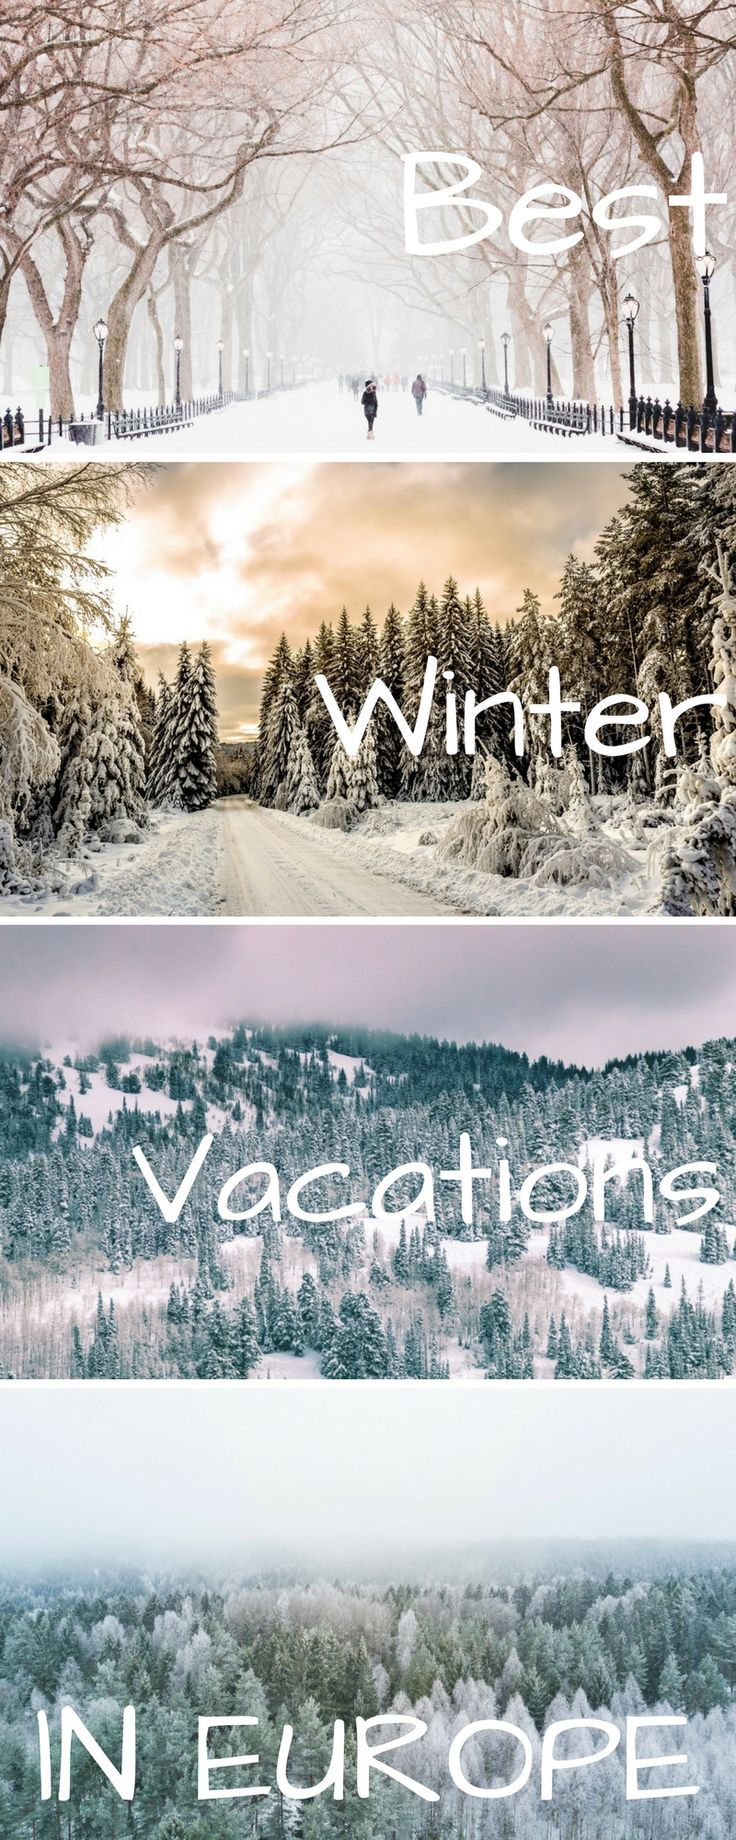 Looking for the best places to visit in Europe this winter? Check here to plan an epic travel experience! Including France, Switzerland, Italy, Portugal, Germany, Finland, and Iceland!